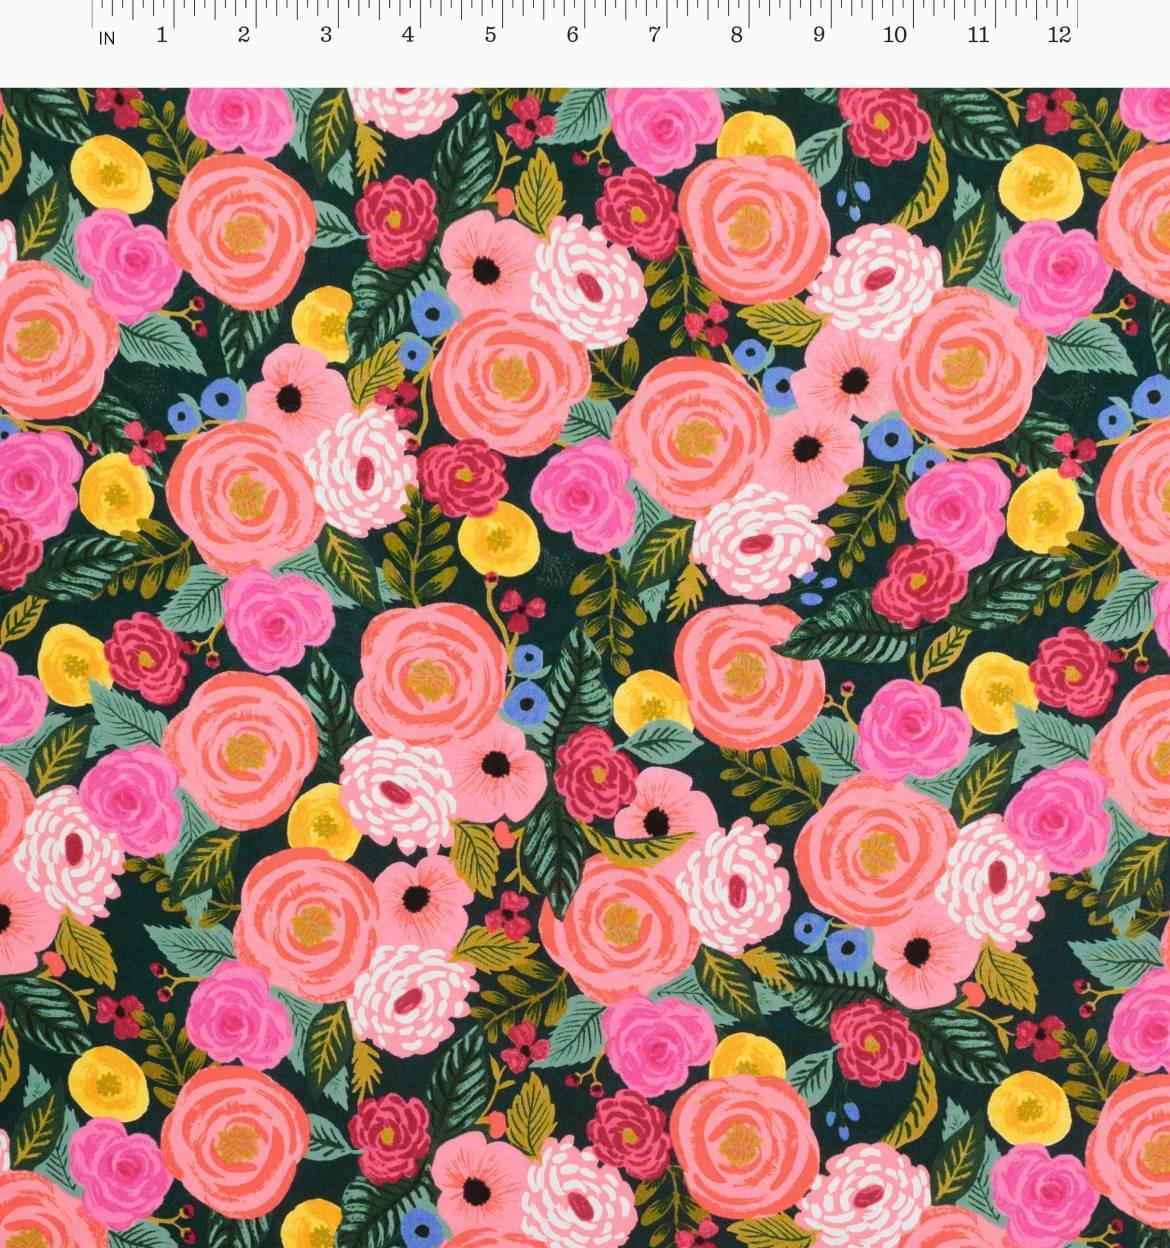 Juliet Rose in Navy (Rayon Fabric) by Rifle Paper Co from the English Garden collection for Cotton and Steel #AB806415